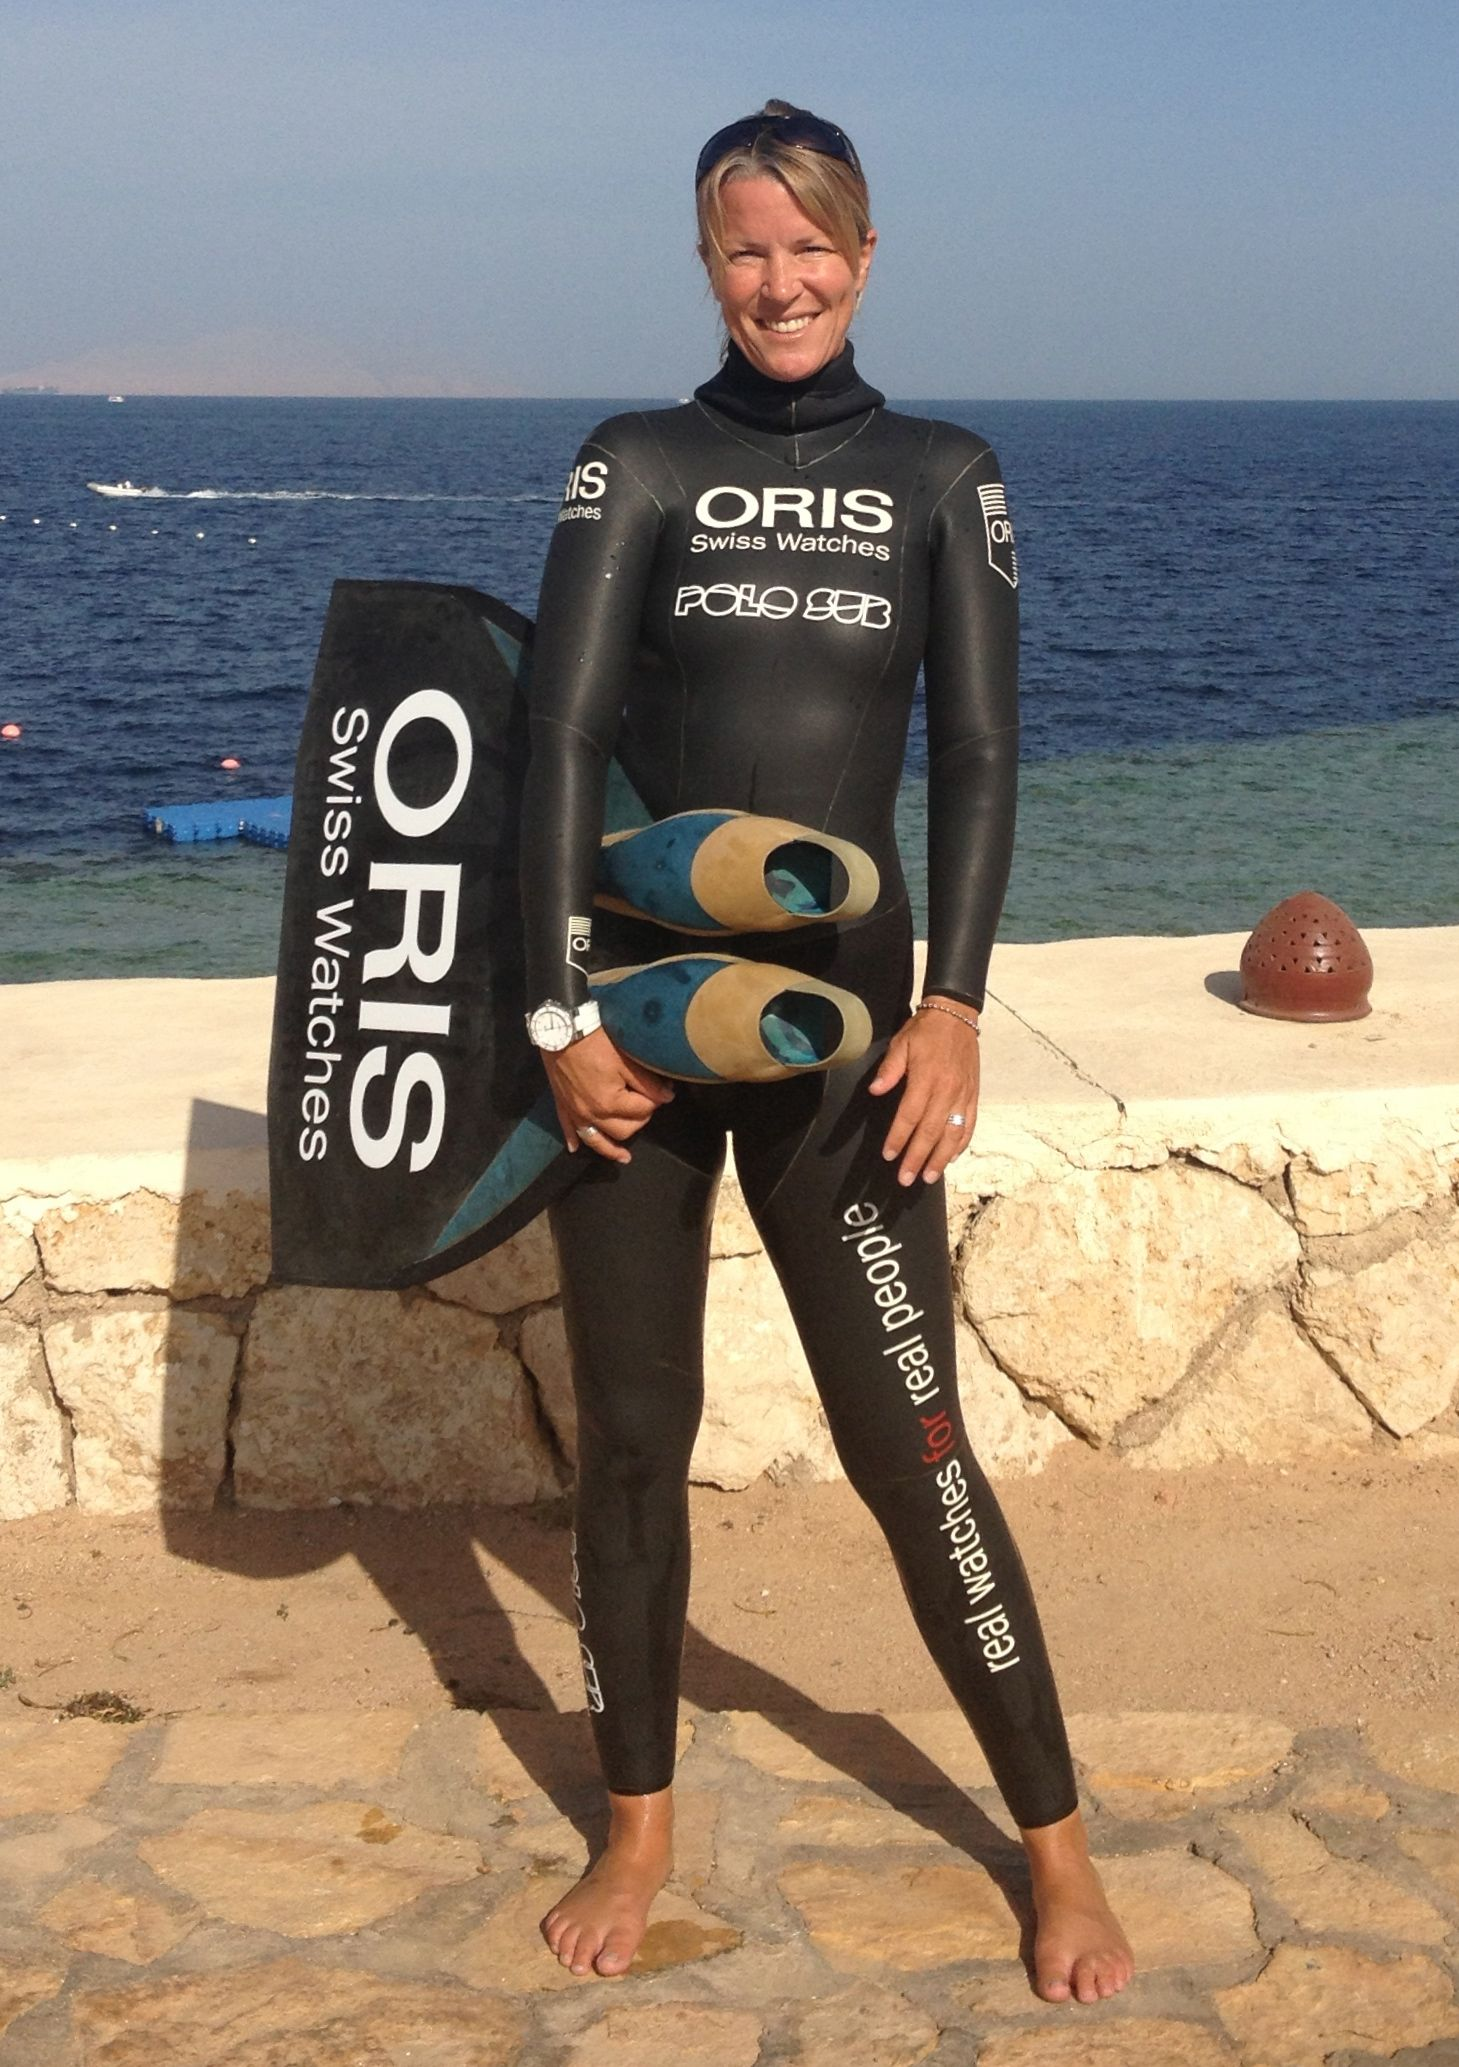 World Record Holder Dives in to a Partnership with Oris